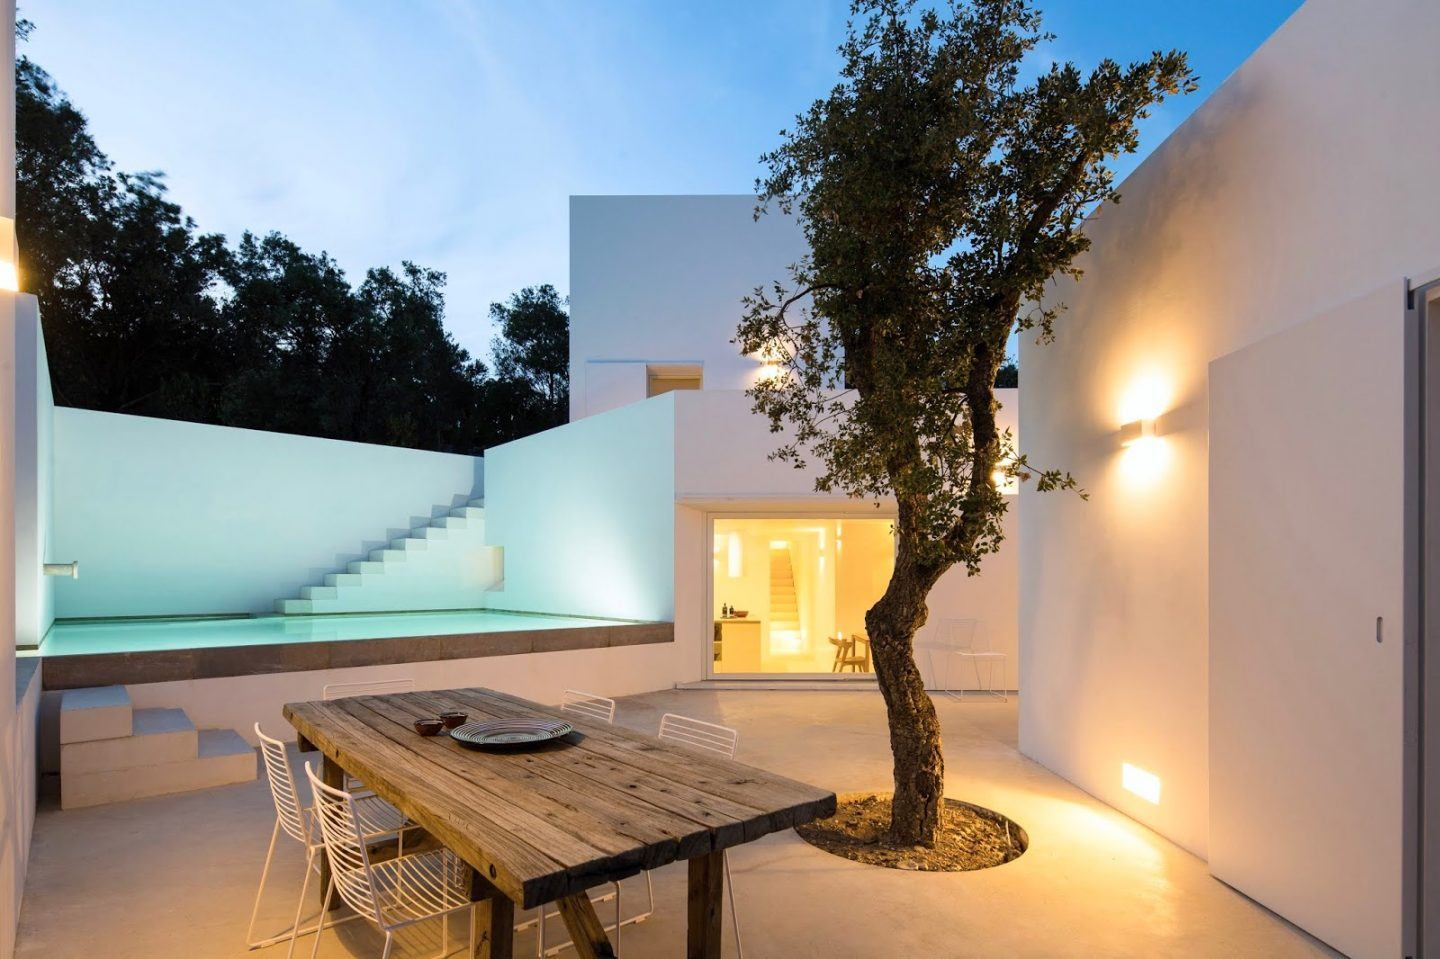 IGNANT-Travel-Casa-Luum-Portugal-12